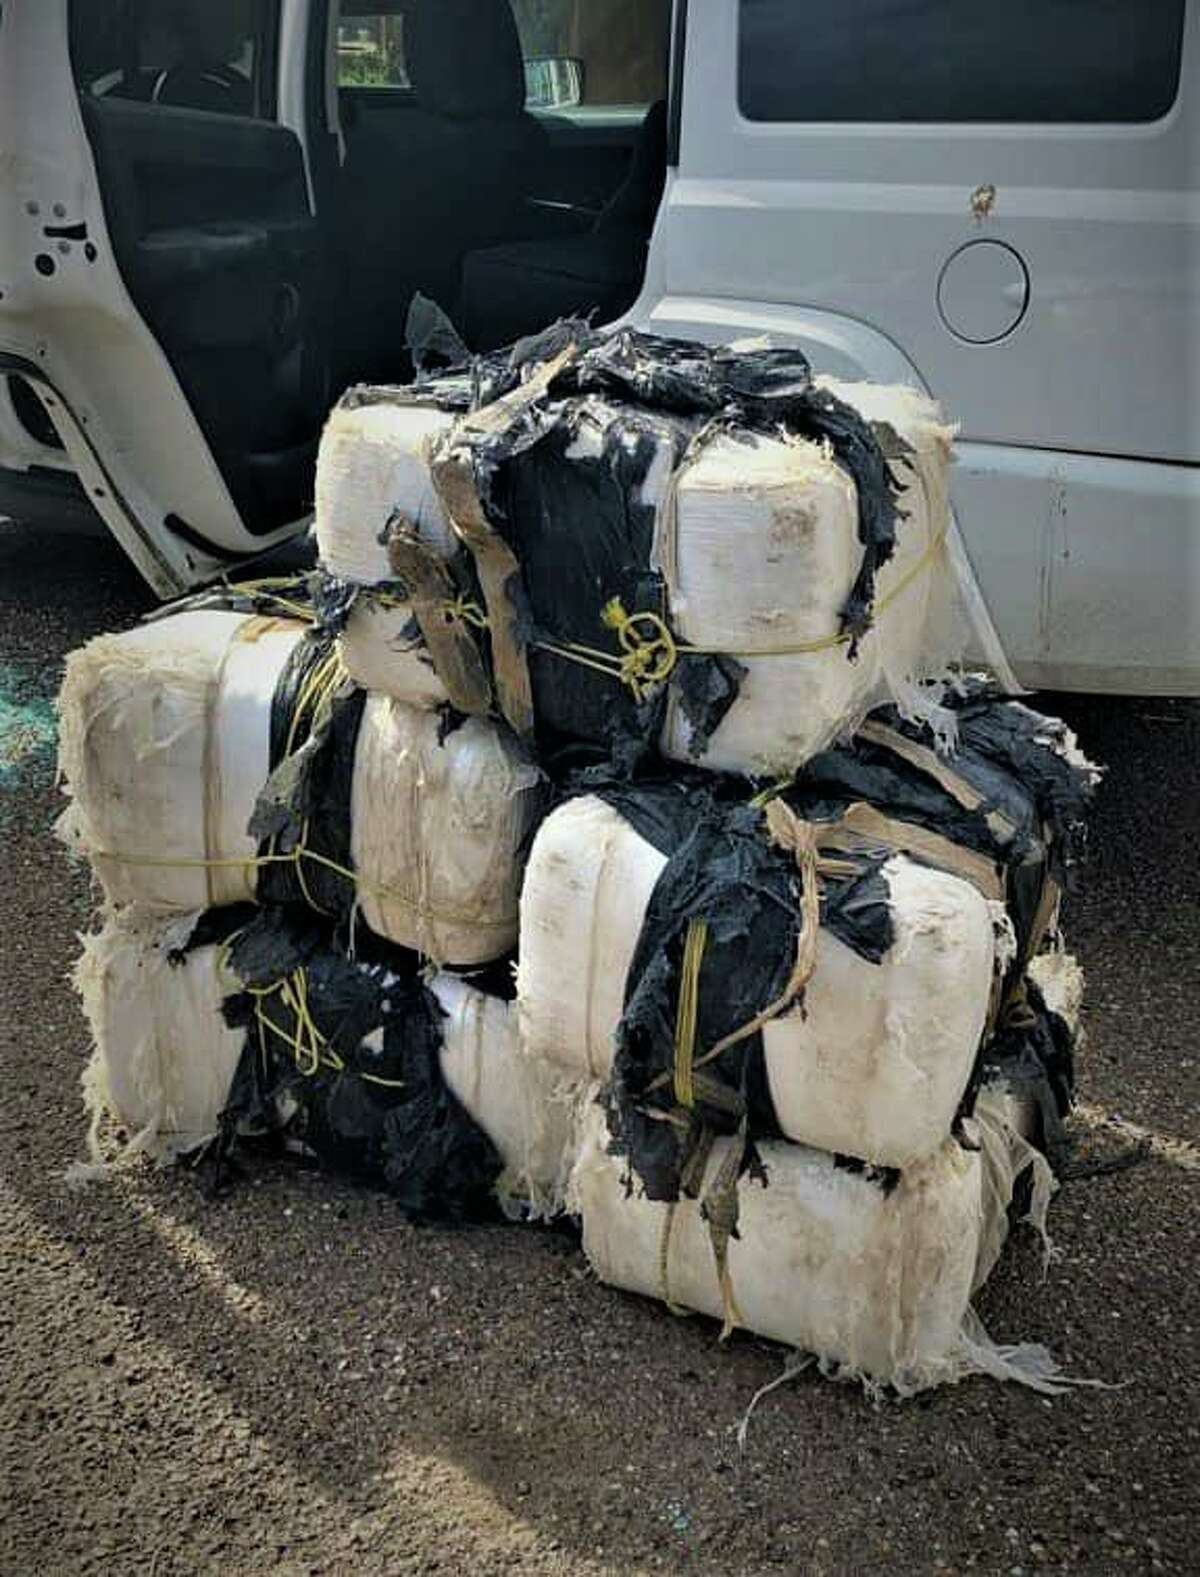 U.S. Border Patrol agents said they seized nearly 400 pounds of marijuana in north Laredo. The contraband had an estimated street value of $132,400.